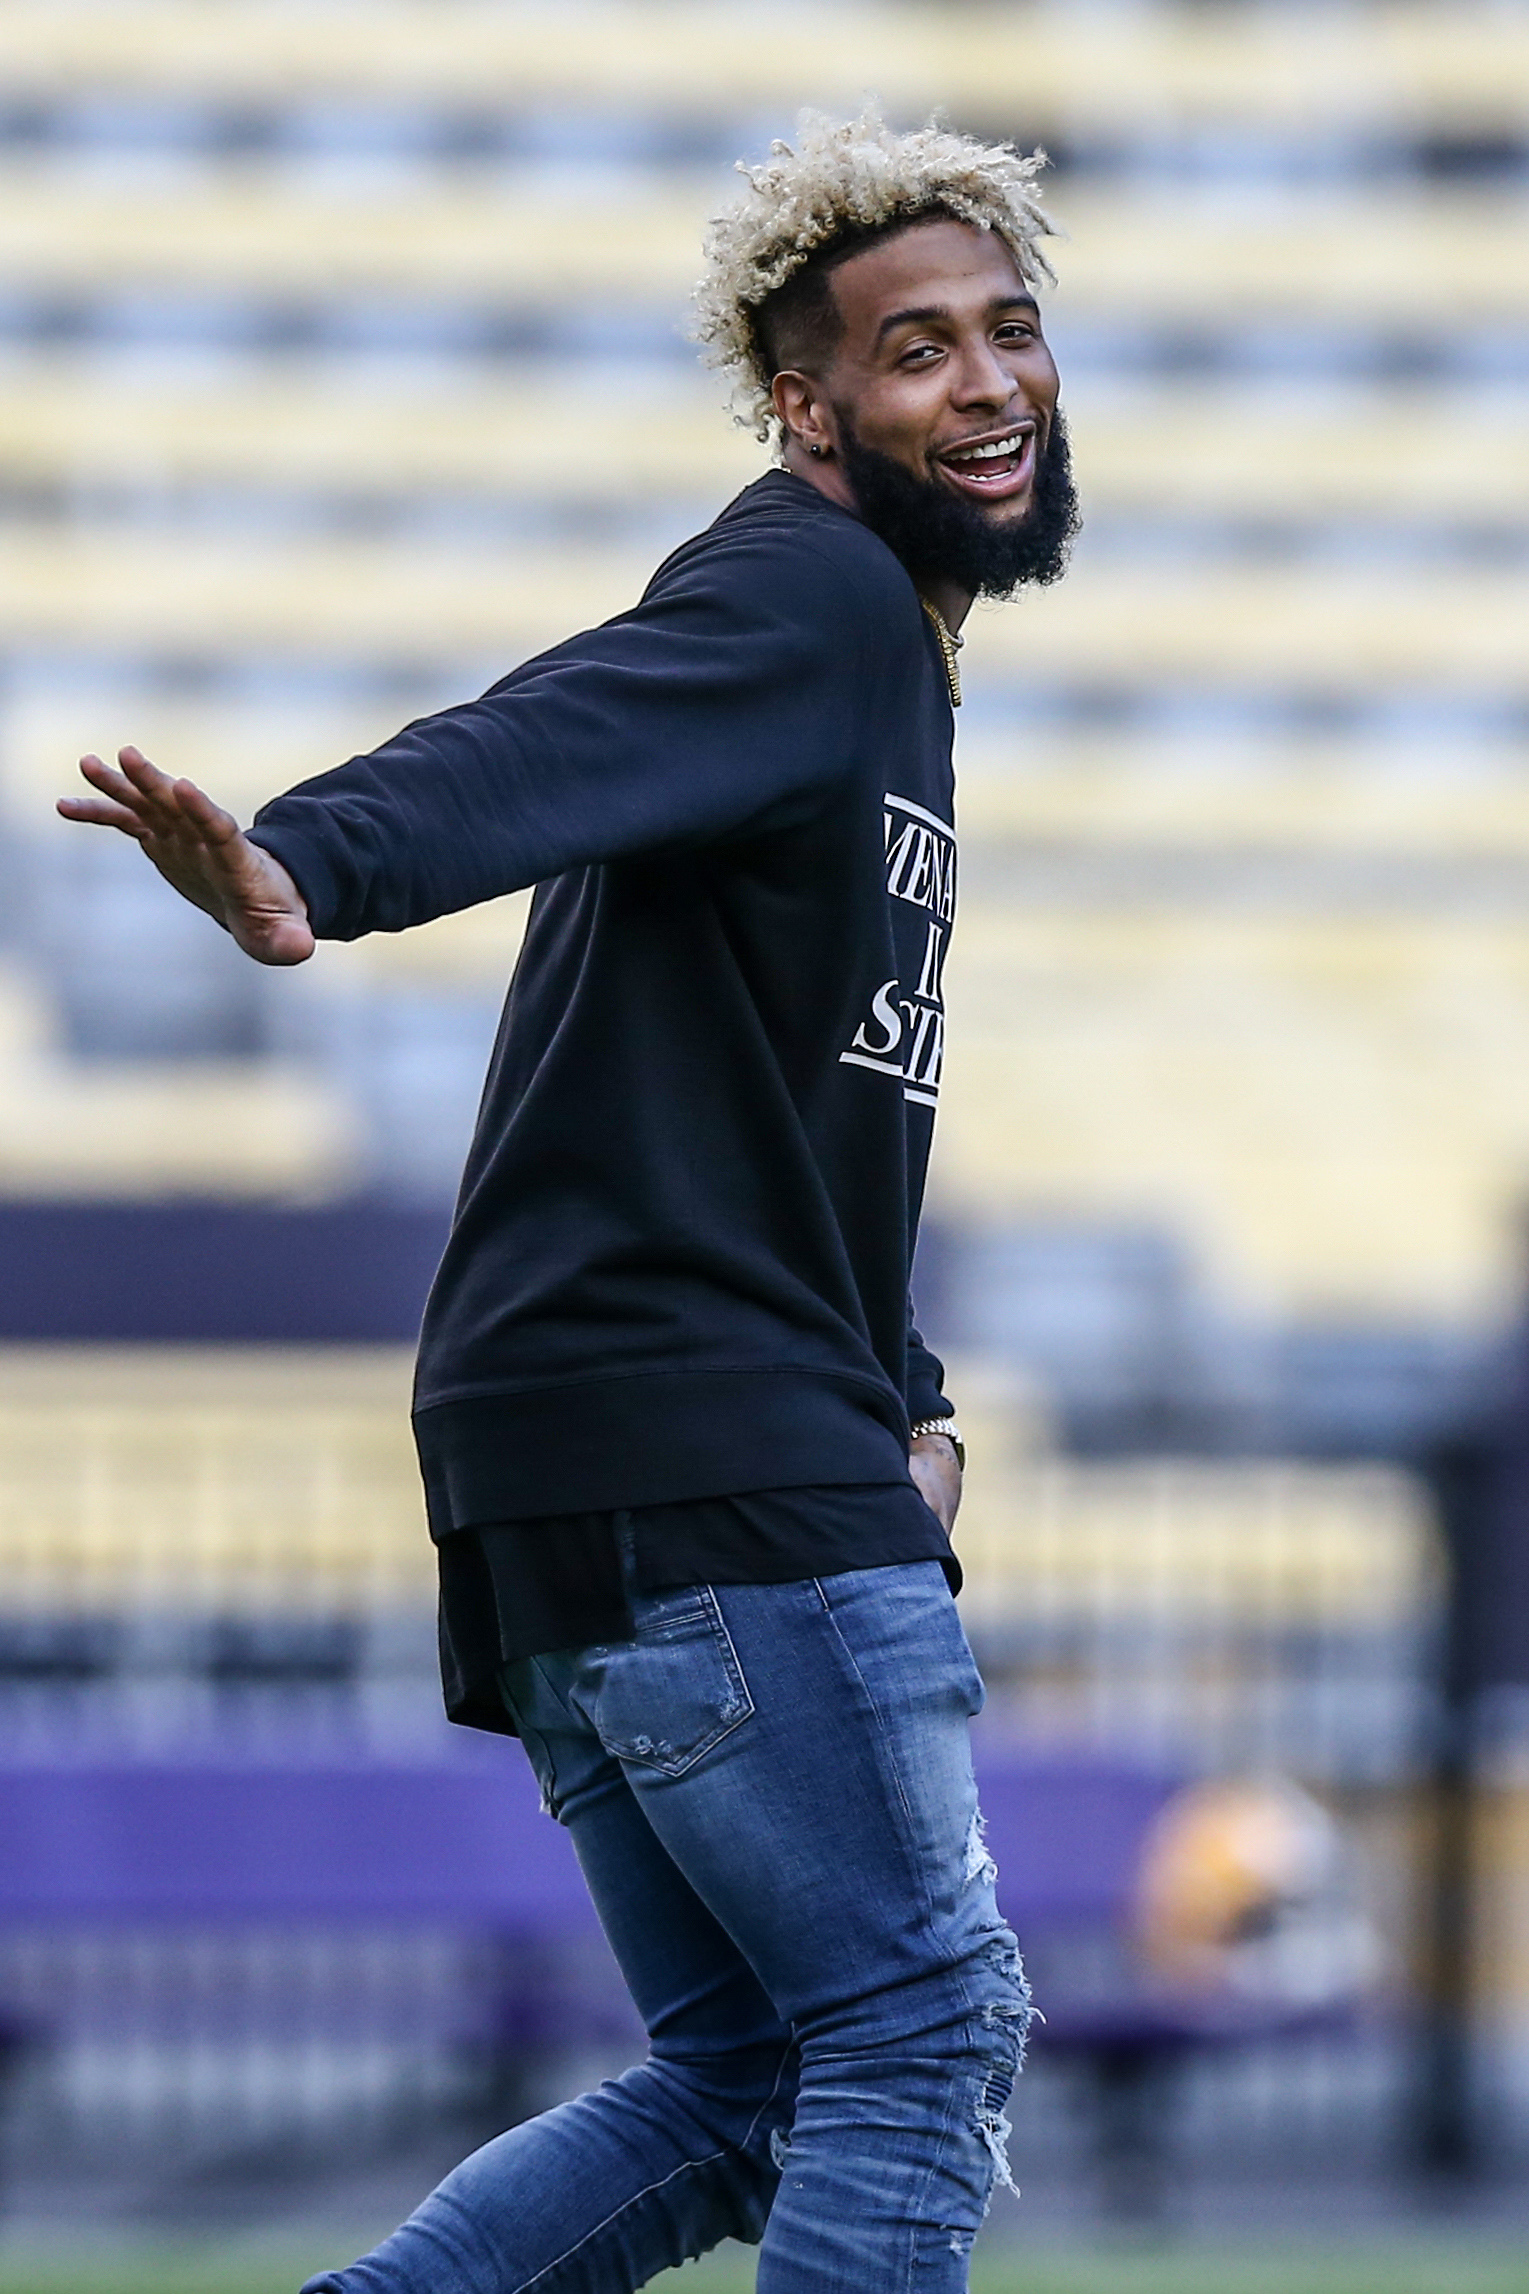 odell beckham jr - photo #26